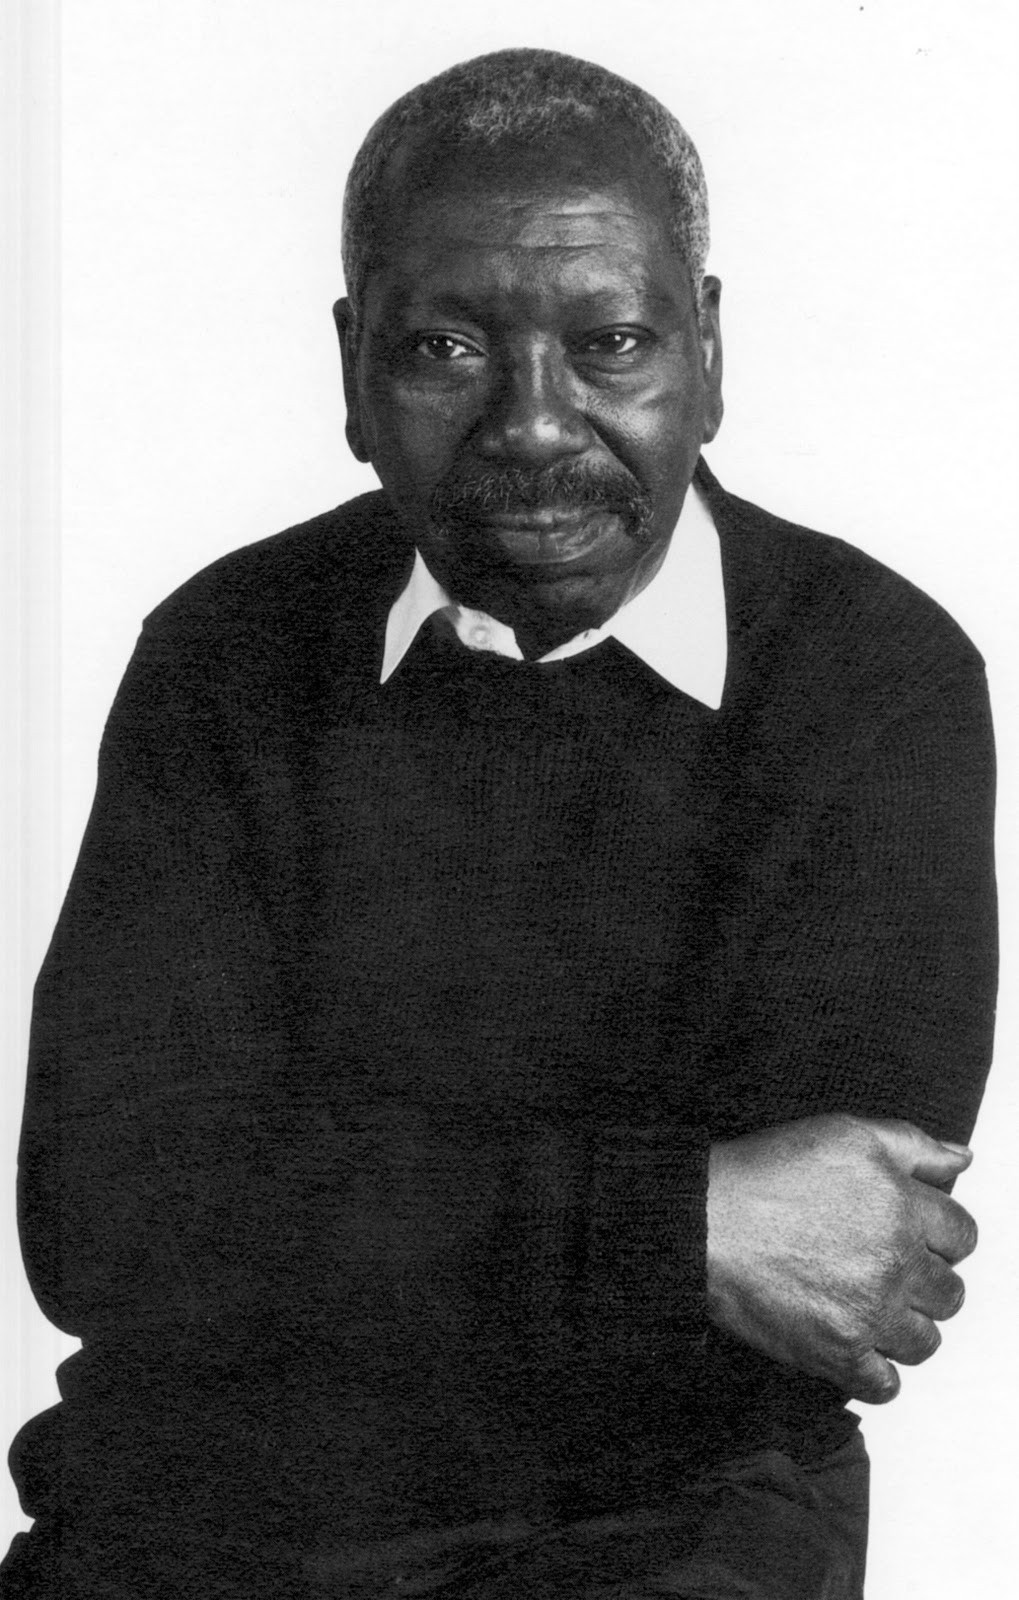 an introduction to the history of american art jacob lawrence Traces the career of african american artist jacob lawrence artist and former student of lawrence samella lewis, art useful introduction to.